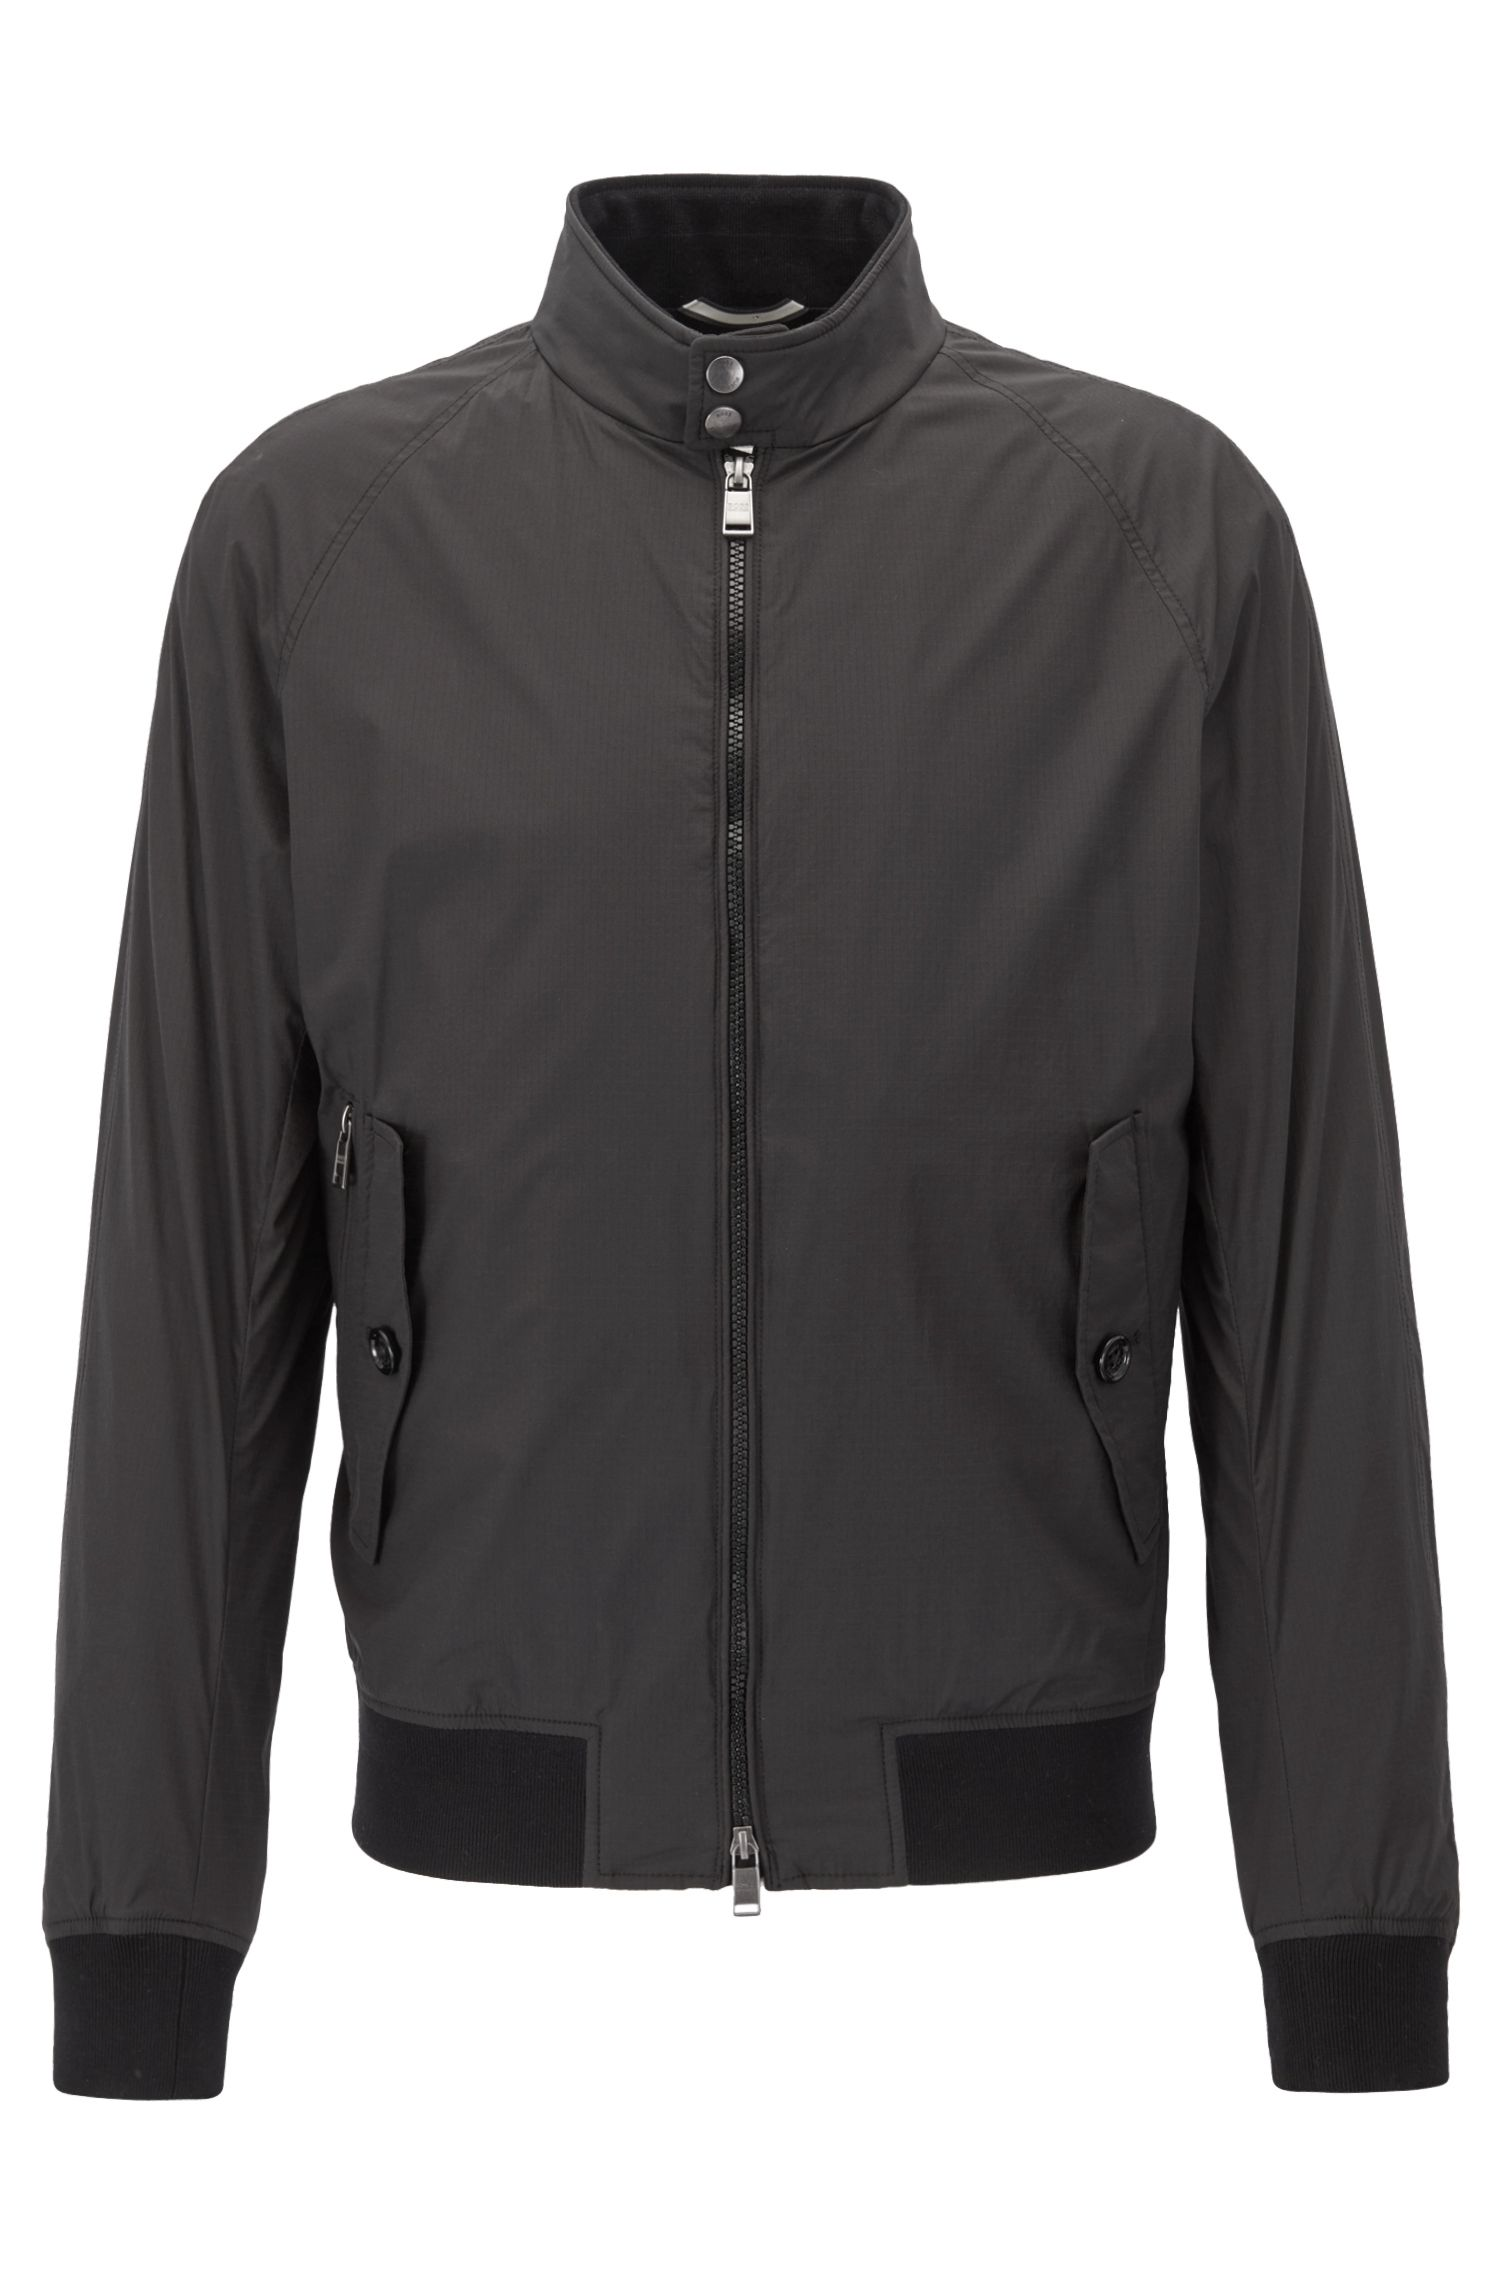 Ultra-light blouson jacket in water-repellent ripstop fabric